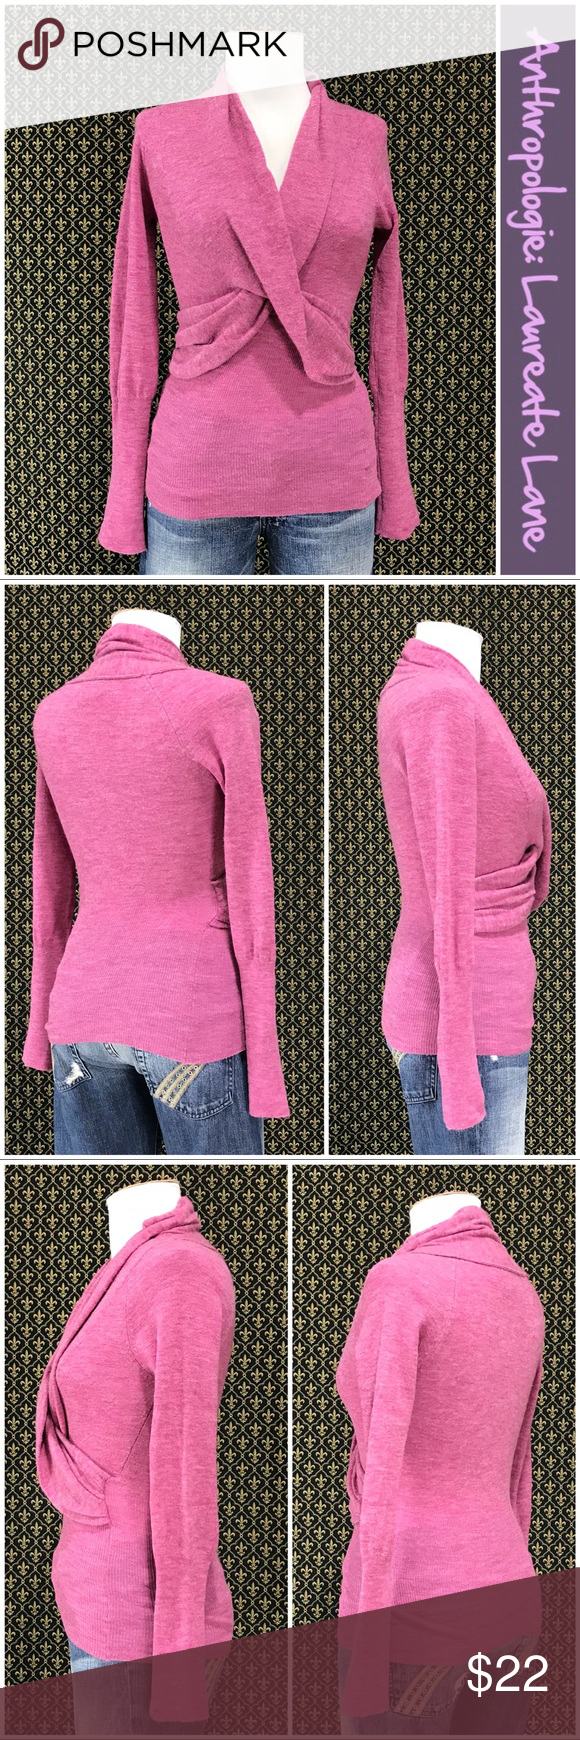 2006 Anthro Frannie Pullover By Laureate Lane Clothes Design